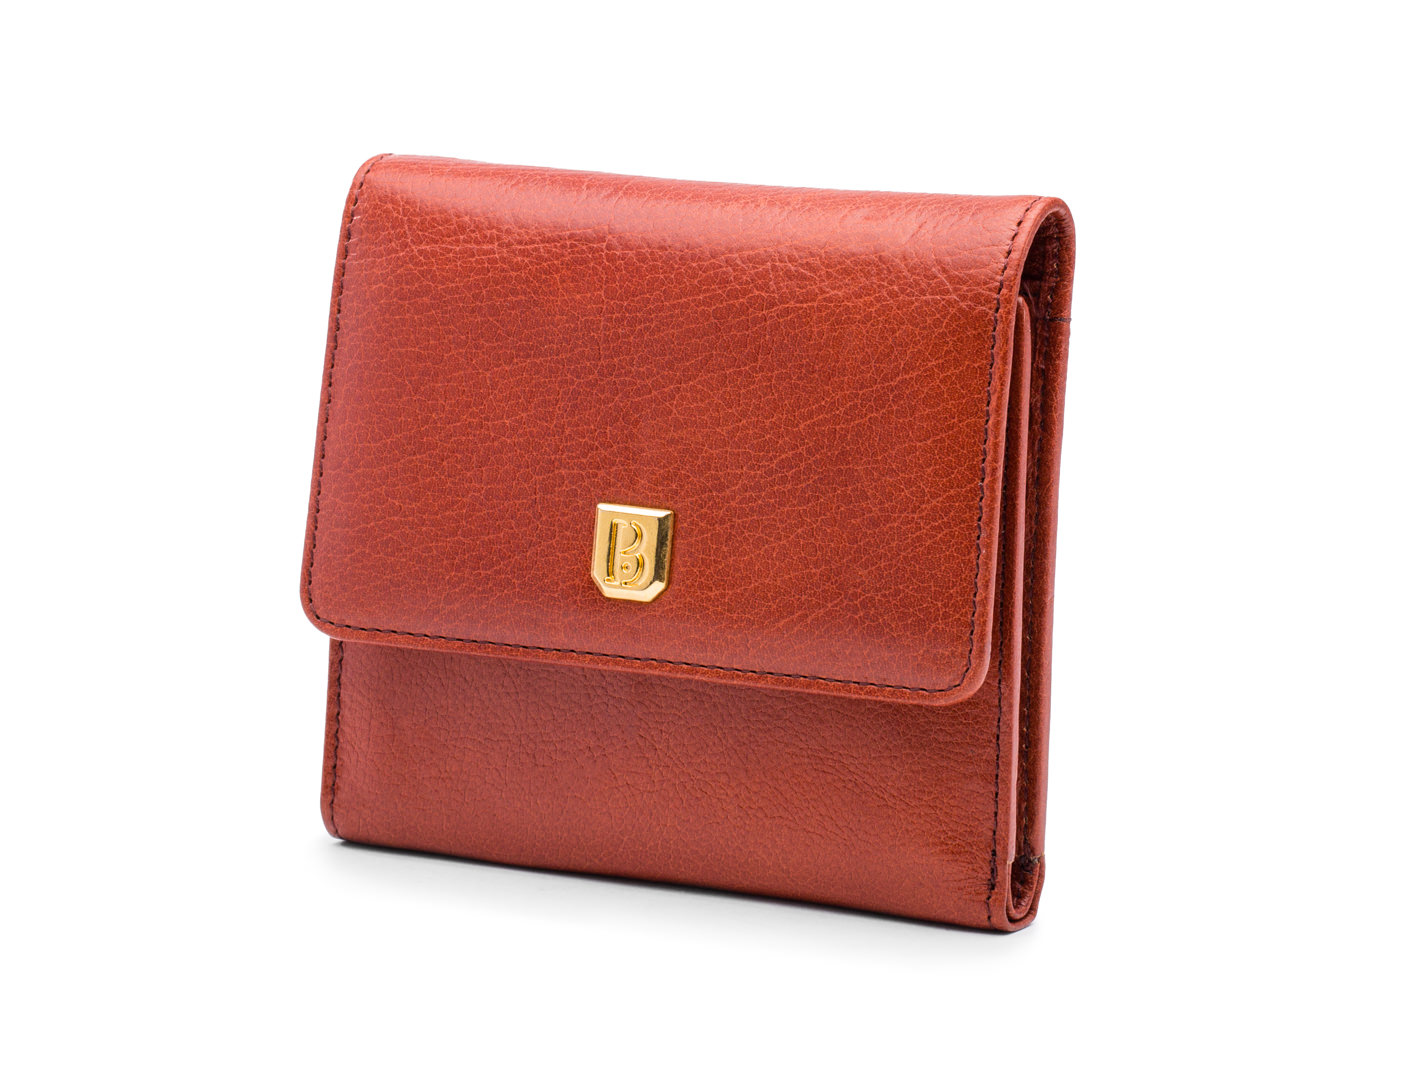 Saddle Brown Small Wallet - 71 Saddle Brown